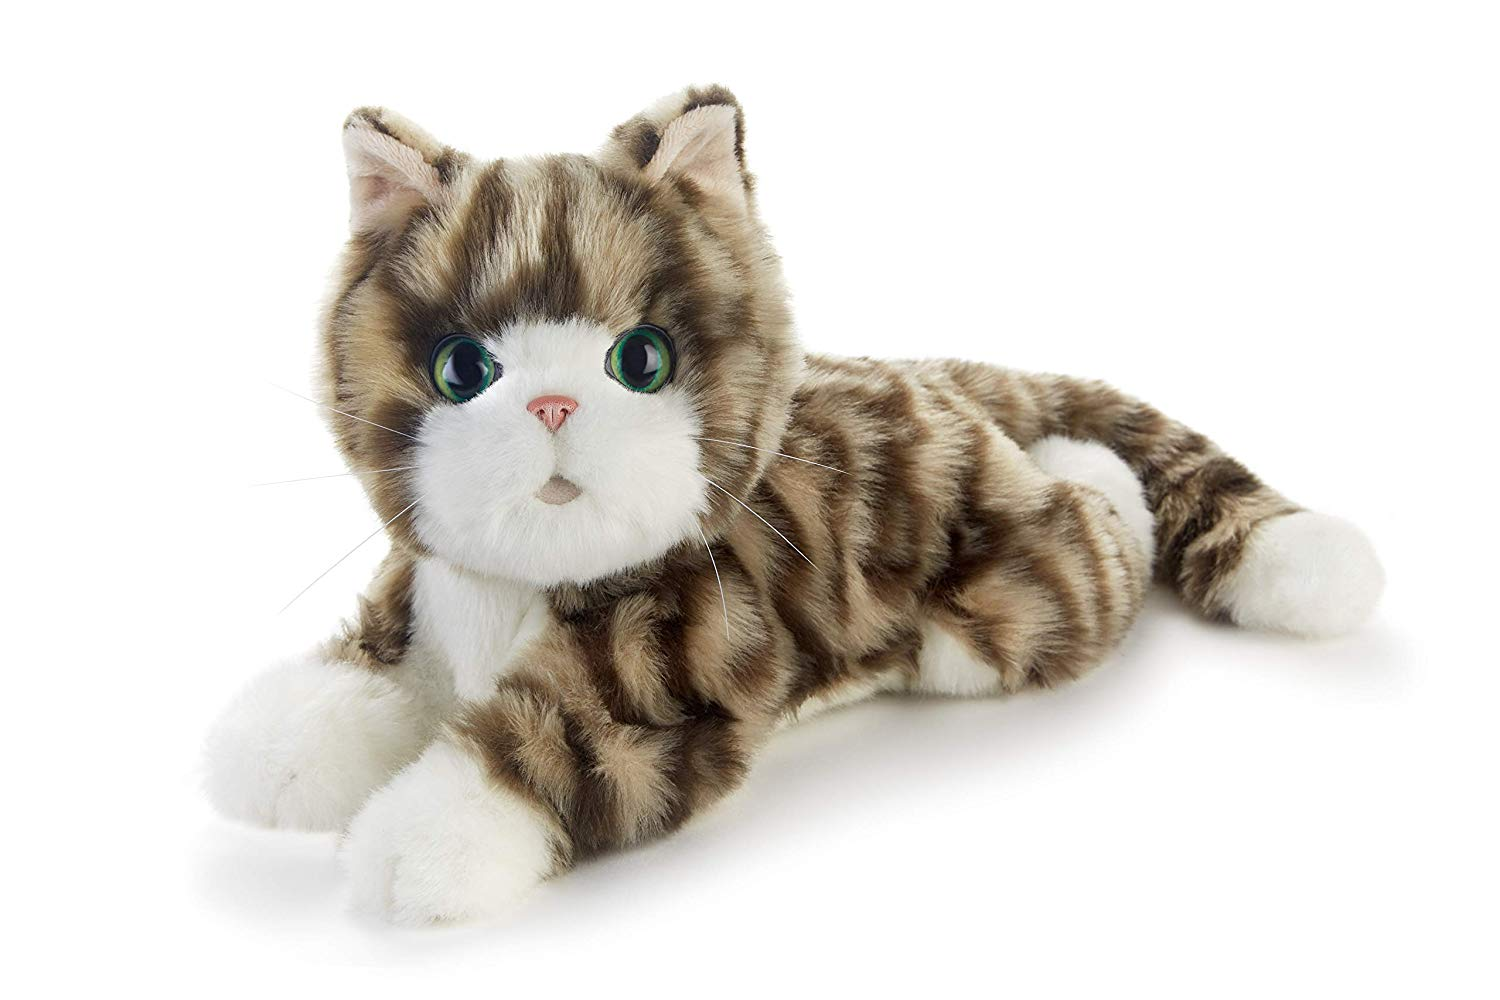 8043-chat-cat-orange-tigre-tabby-JoyForAll-peluche-interactive-plush-animal-Alzheimer-interaction.jpg